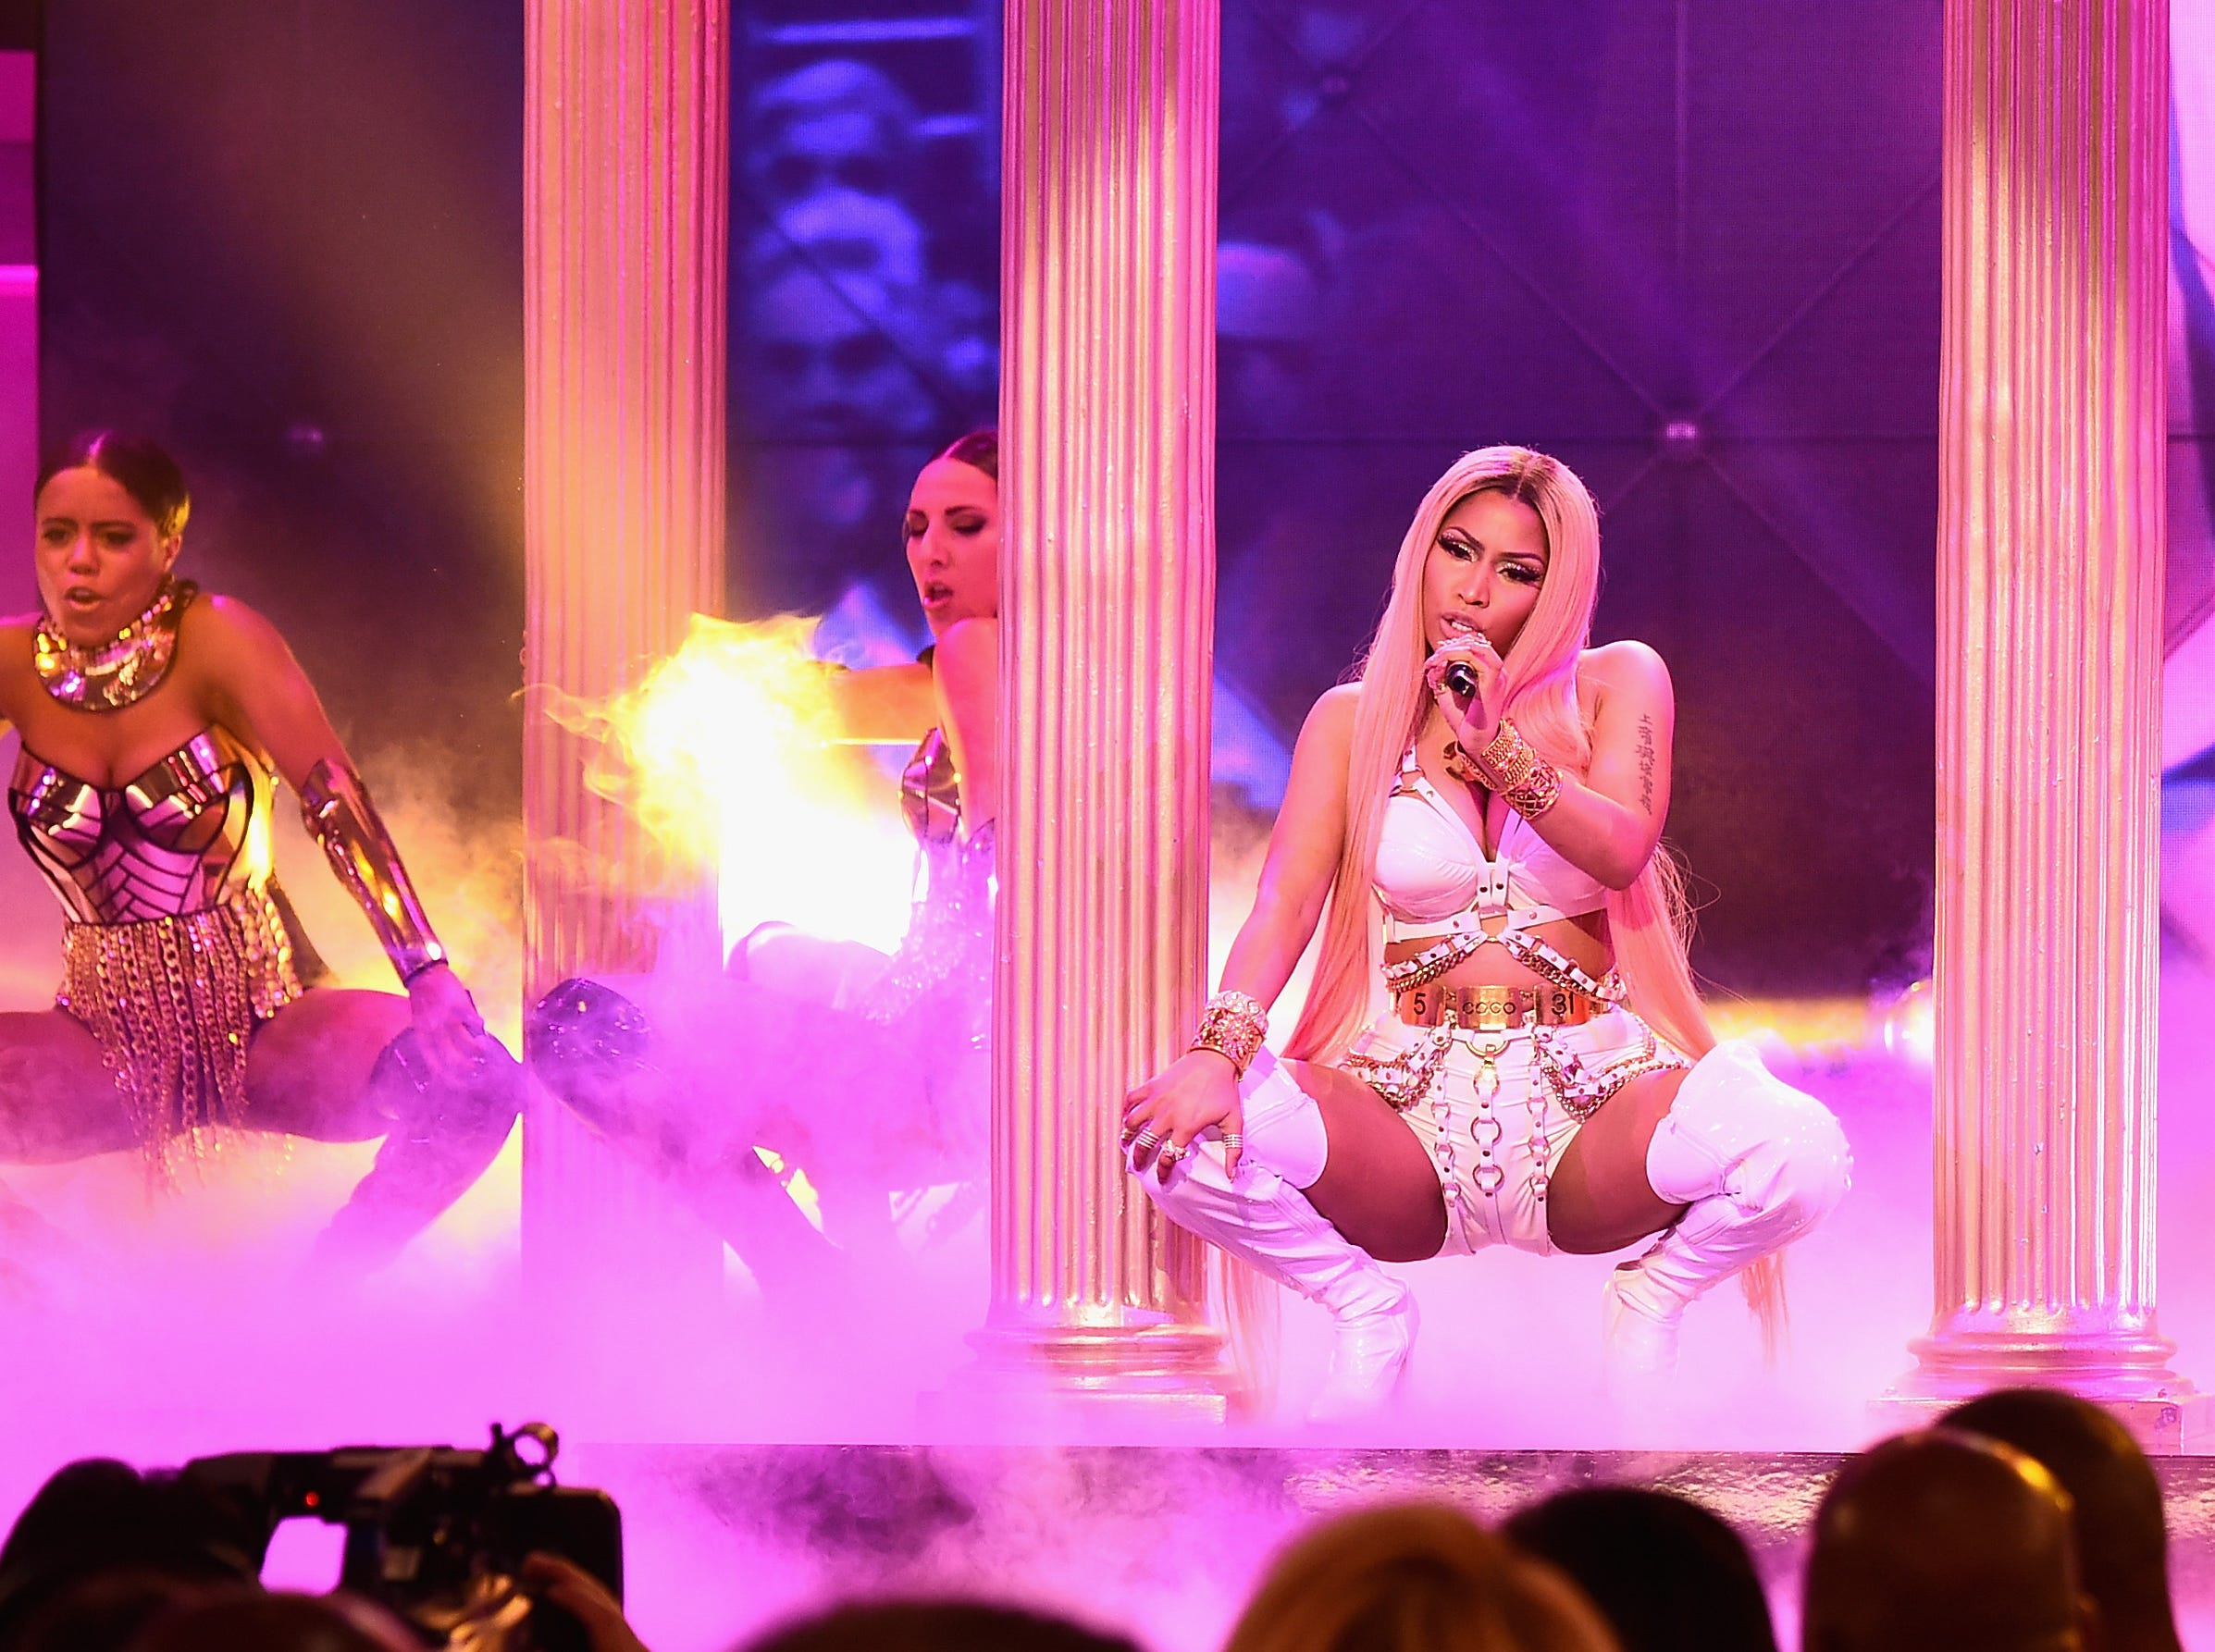 NEW YORK, NY - JUNE 26:  Nicki Minaj performs on stage during the 2017 NBA Awards Live On TNT on June 26, 2017 in New York City. 27111_001  (Photo by Michael Loccisano/Getty Images for TNT ) ORG XMIT: 700037722 ORIG FILE ID: 801526280